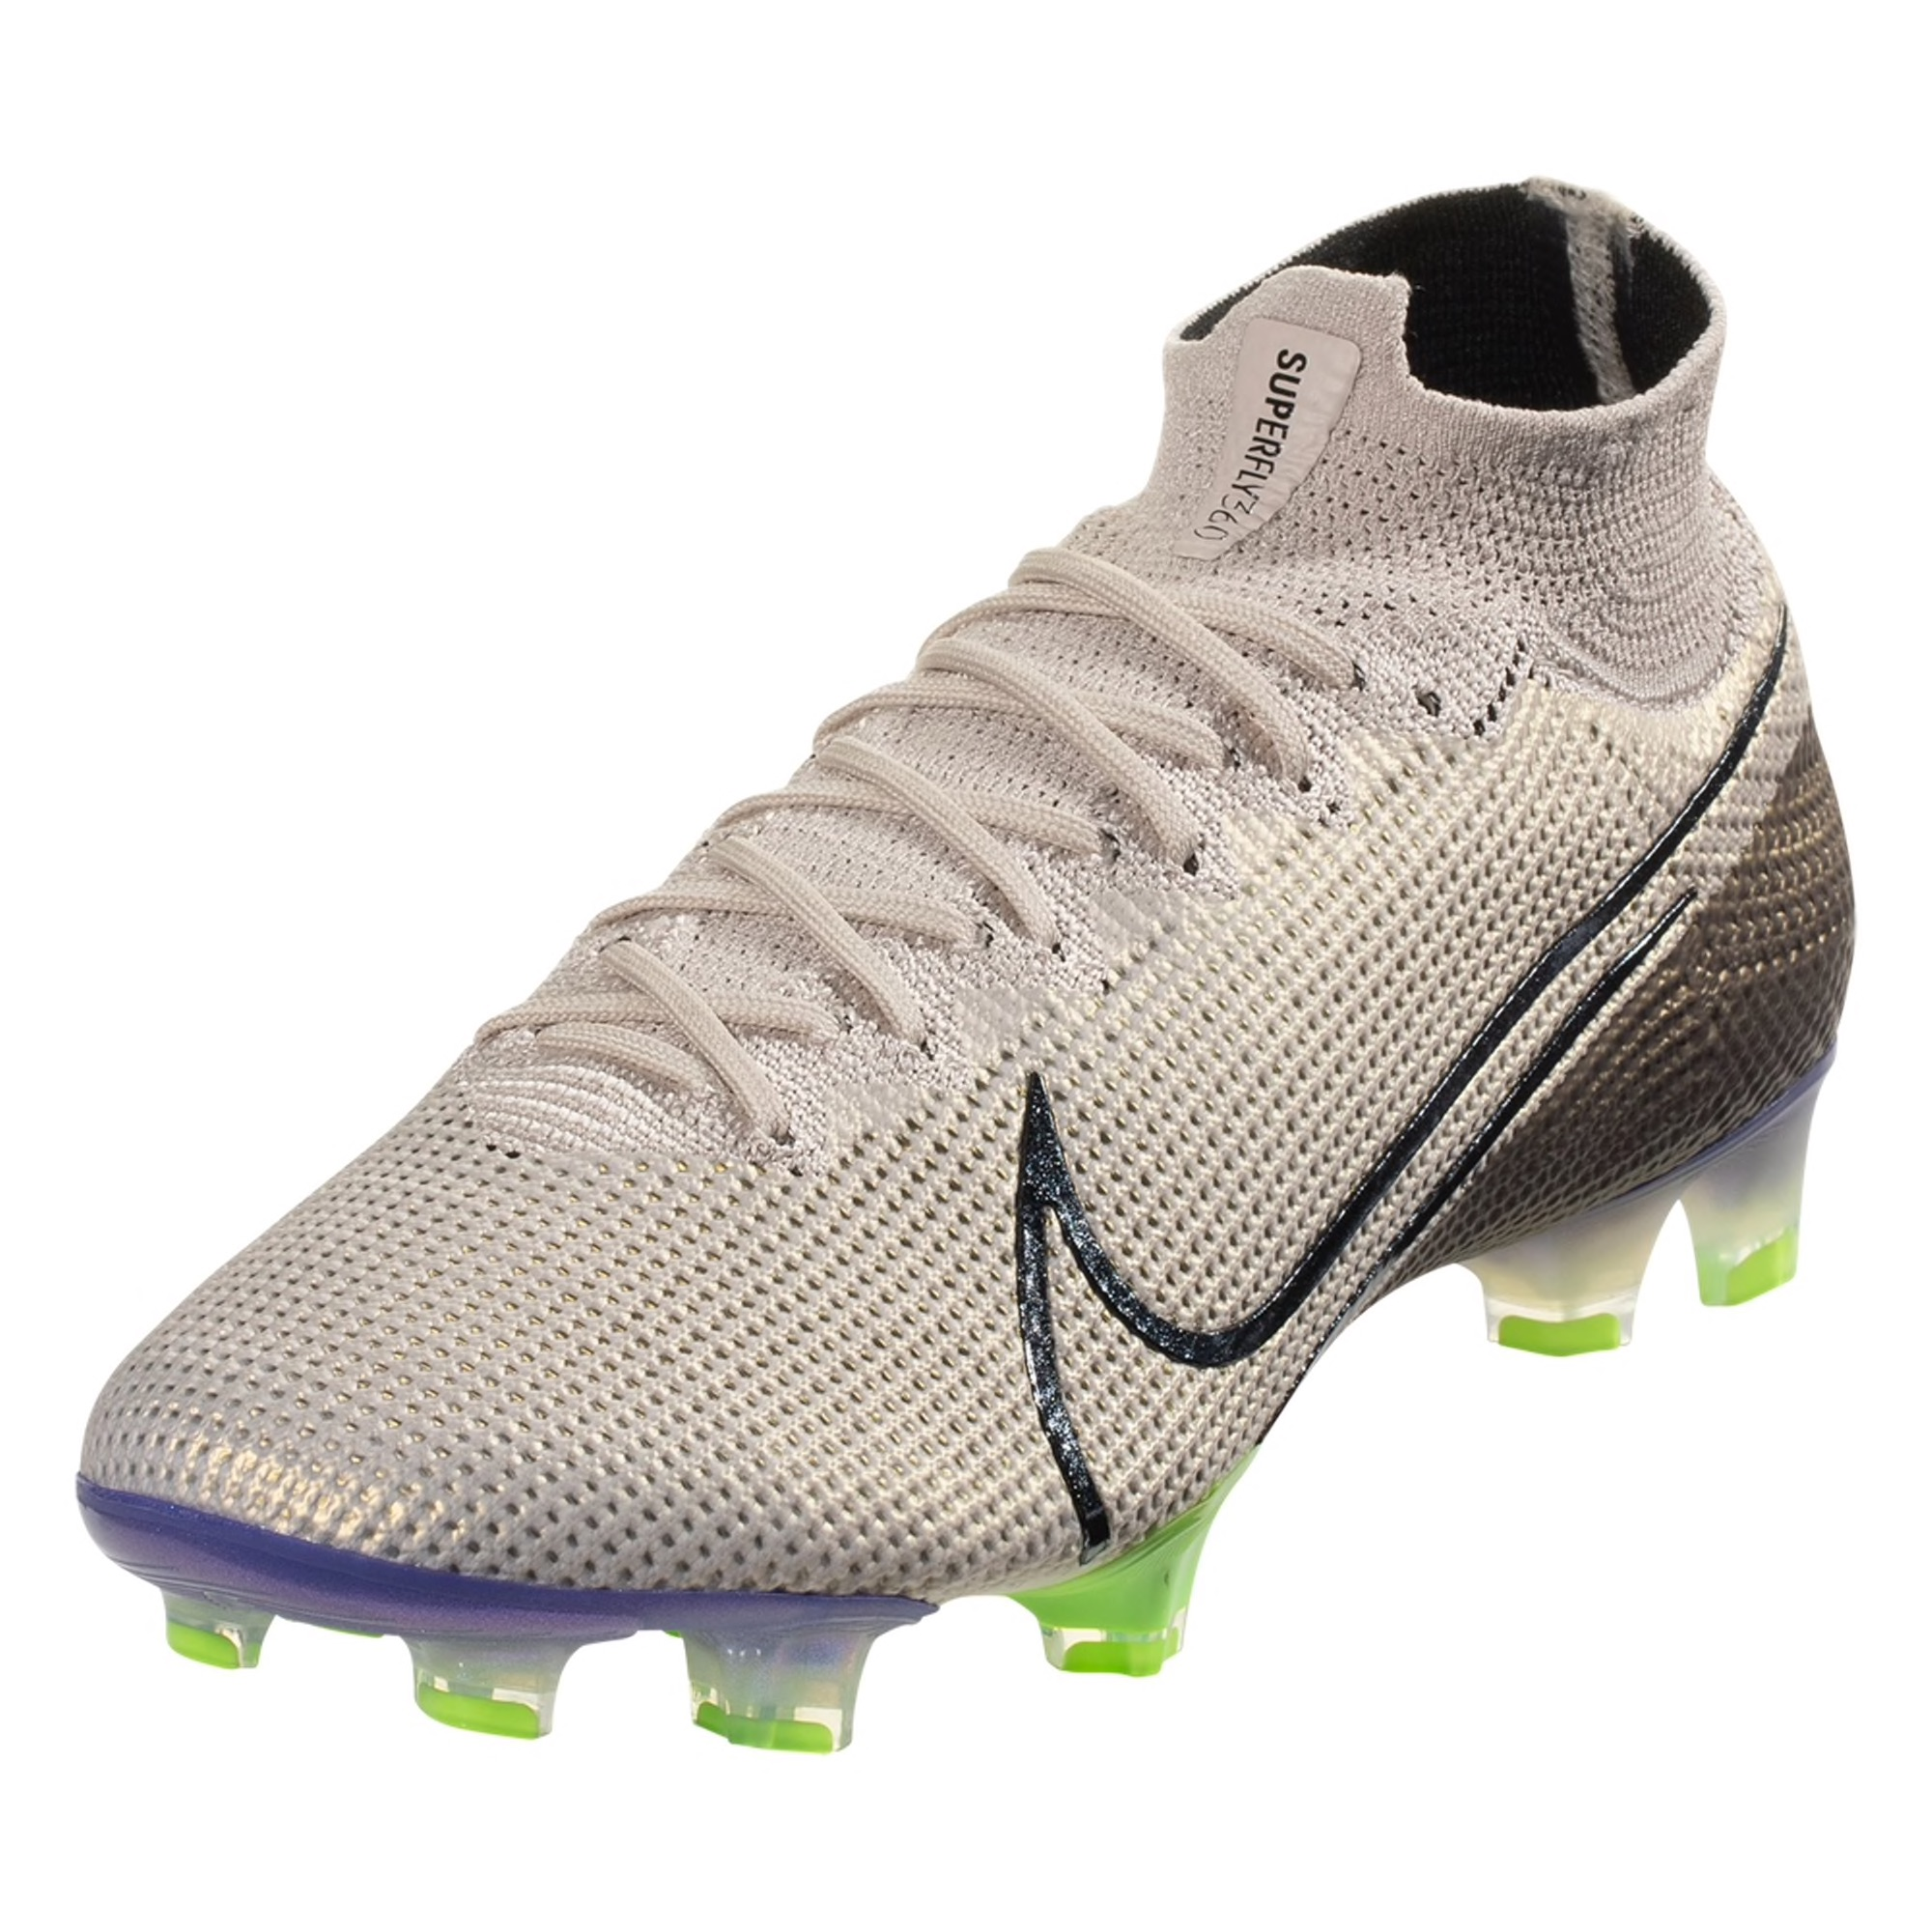 Nike Mercurial Superfly 7 Elite FG Soccer Cleat - Desert Sand / Black / Psychic Purple / Electric Green / Gunsmoke